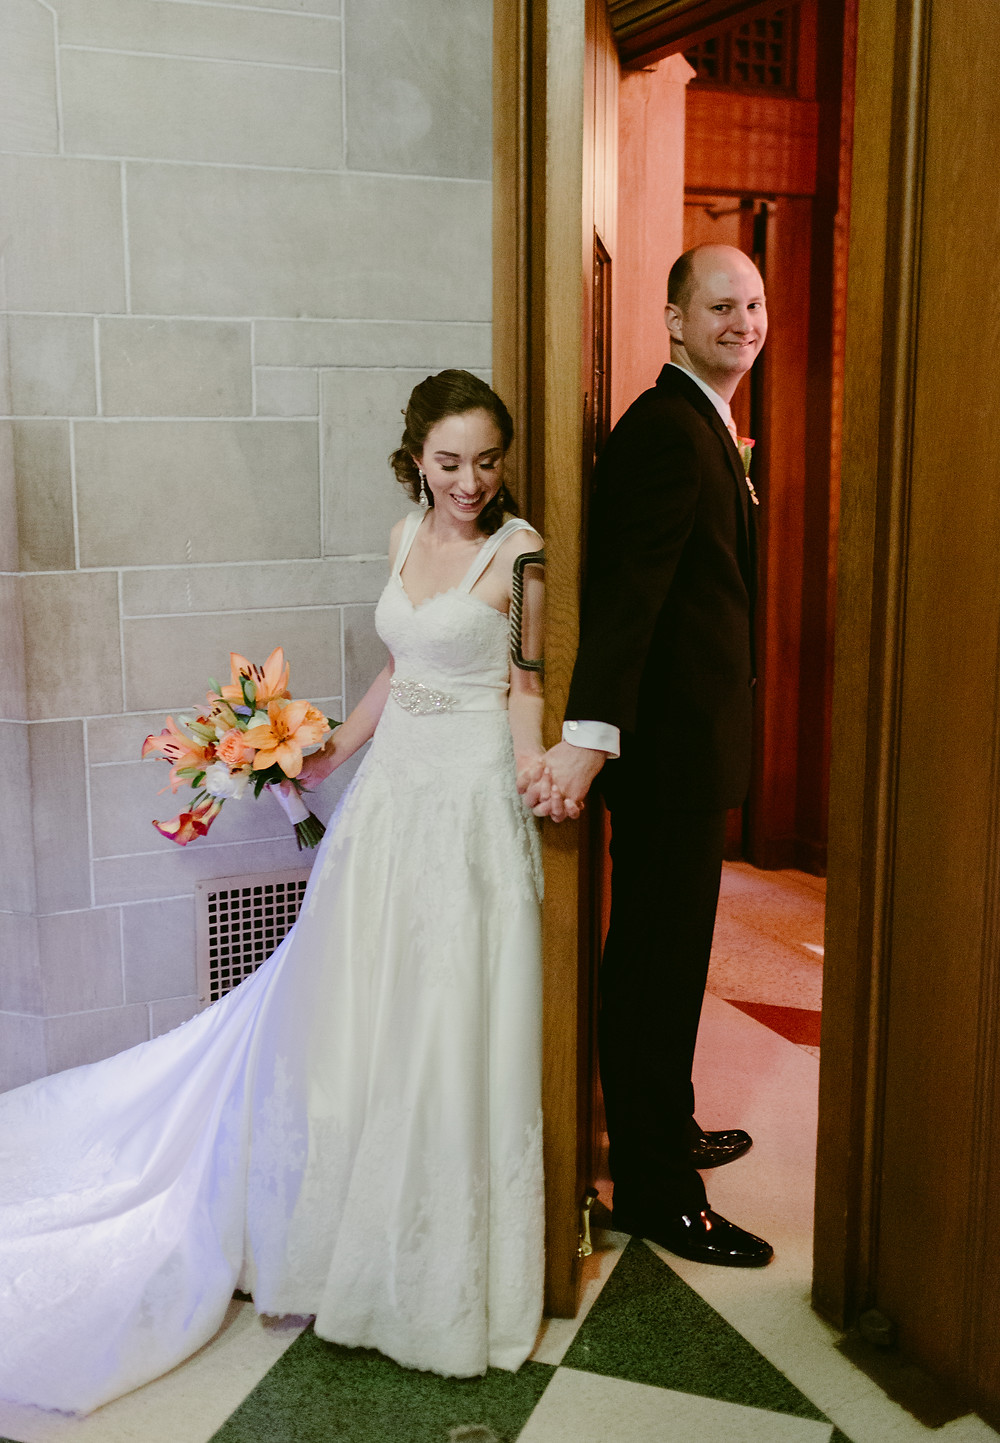 Holding hands behind door before ceremony